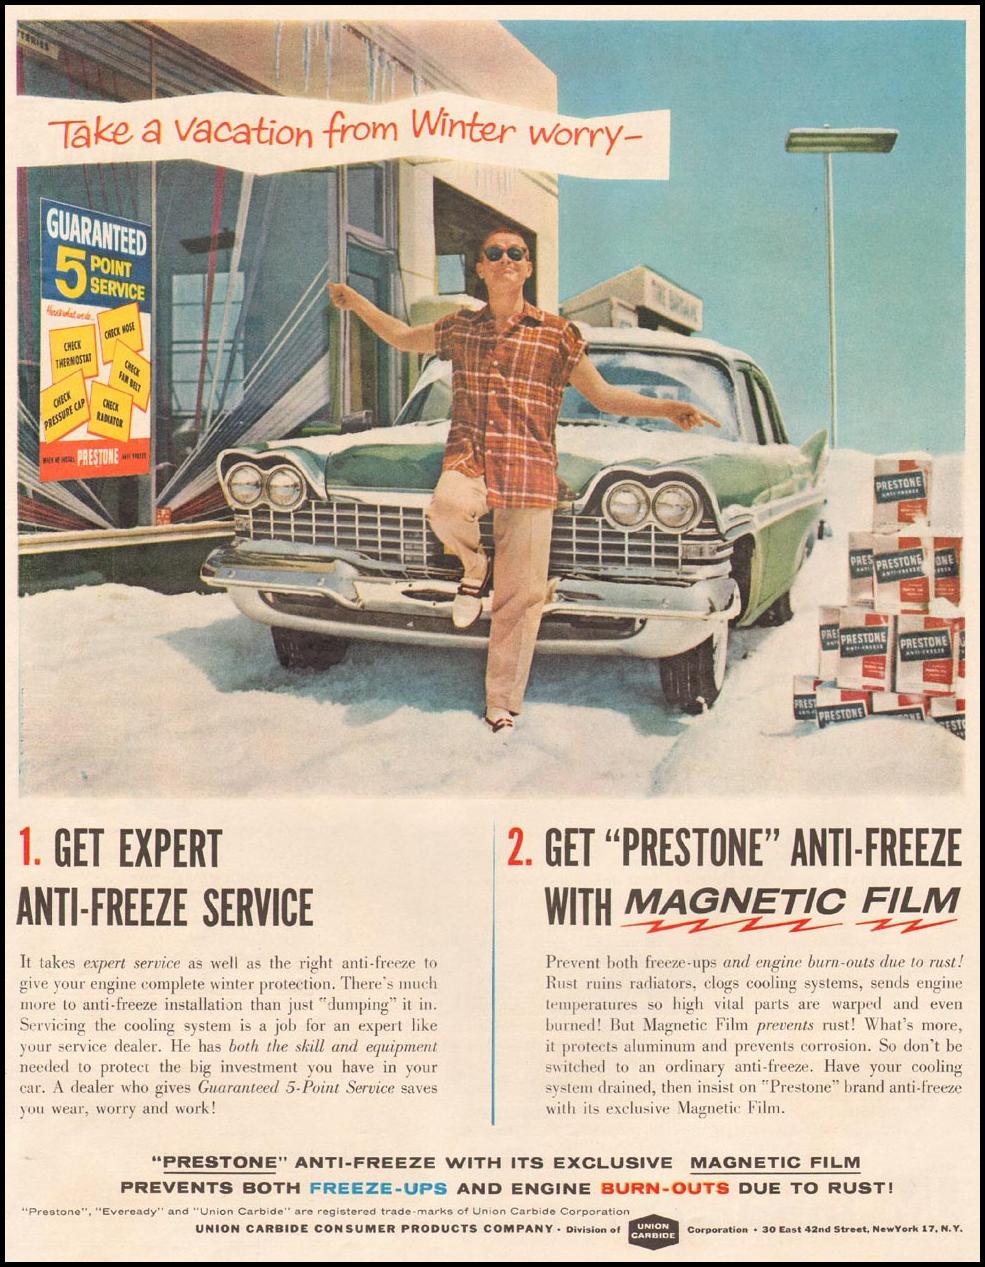 PRESTONE ANTI-FREEZE LIFE 10/05/1959